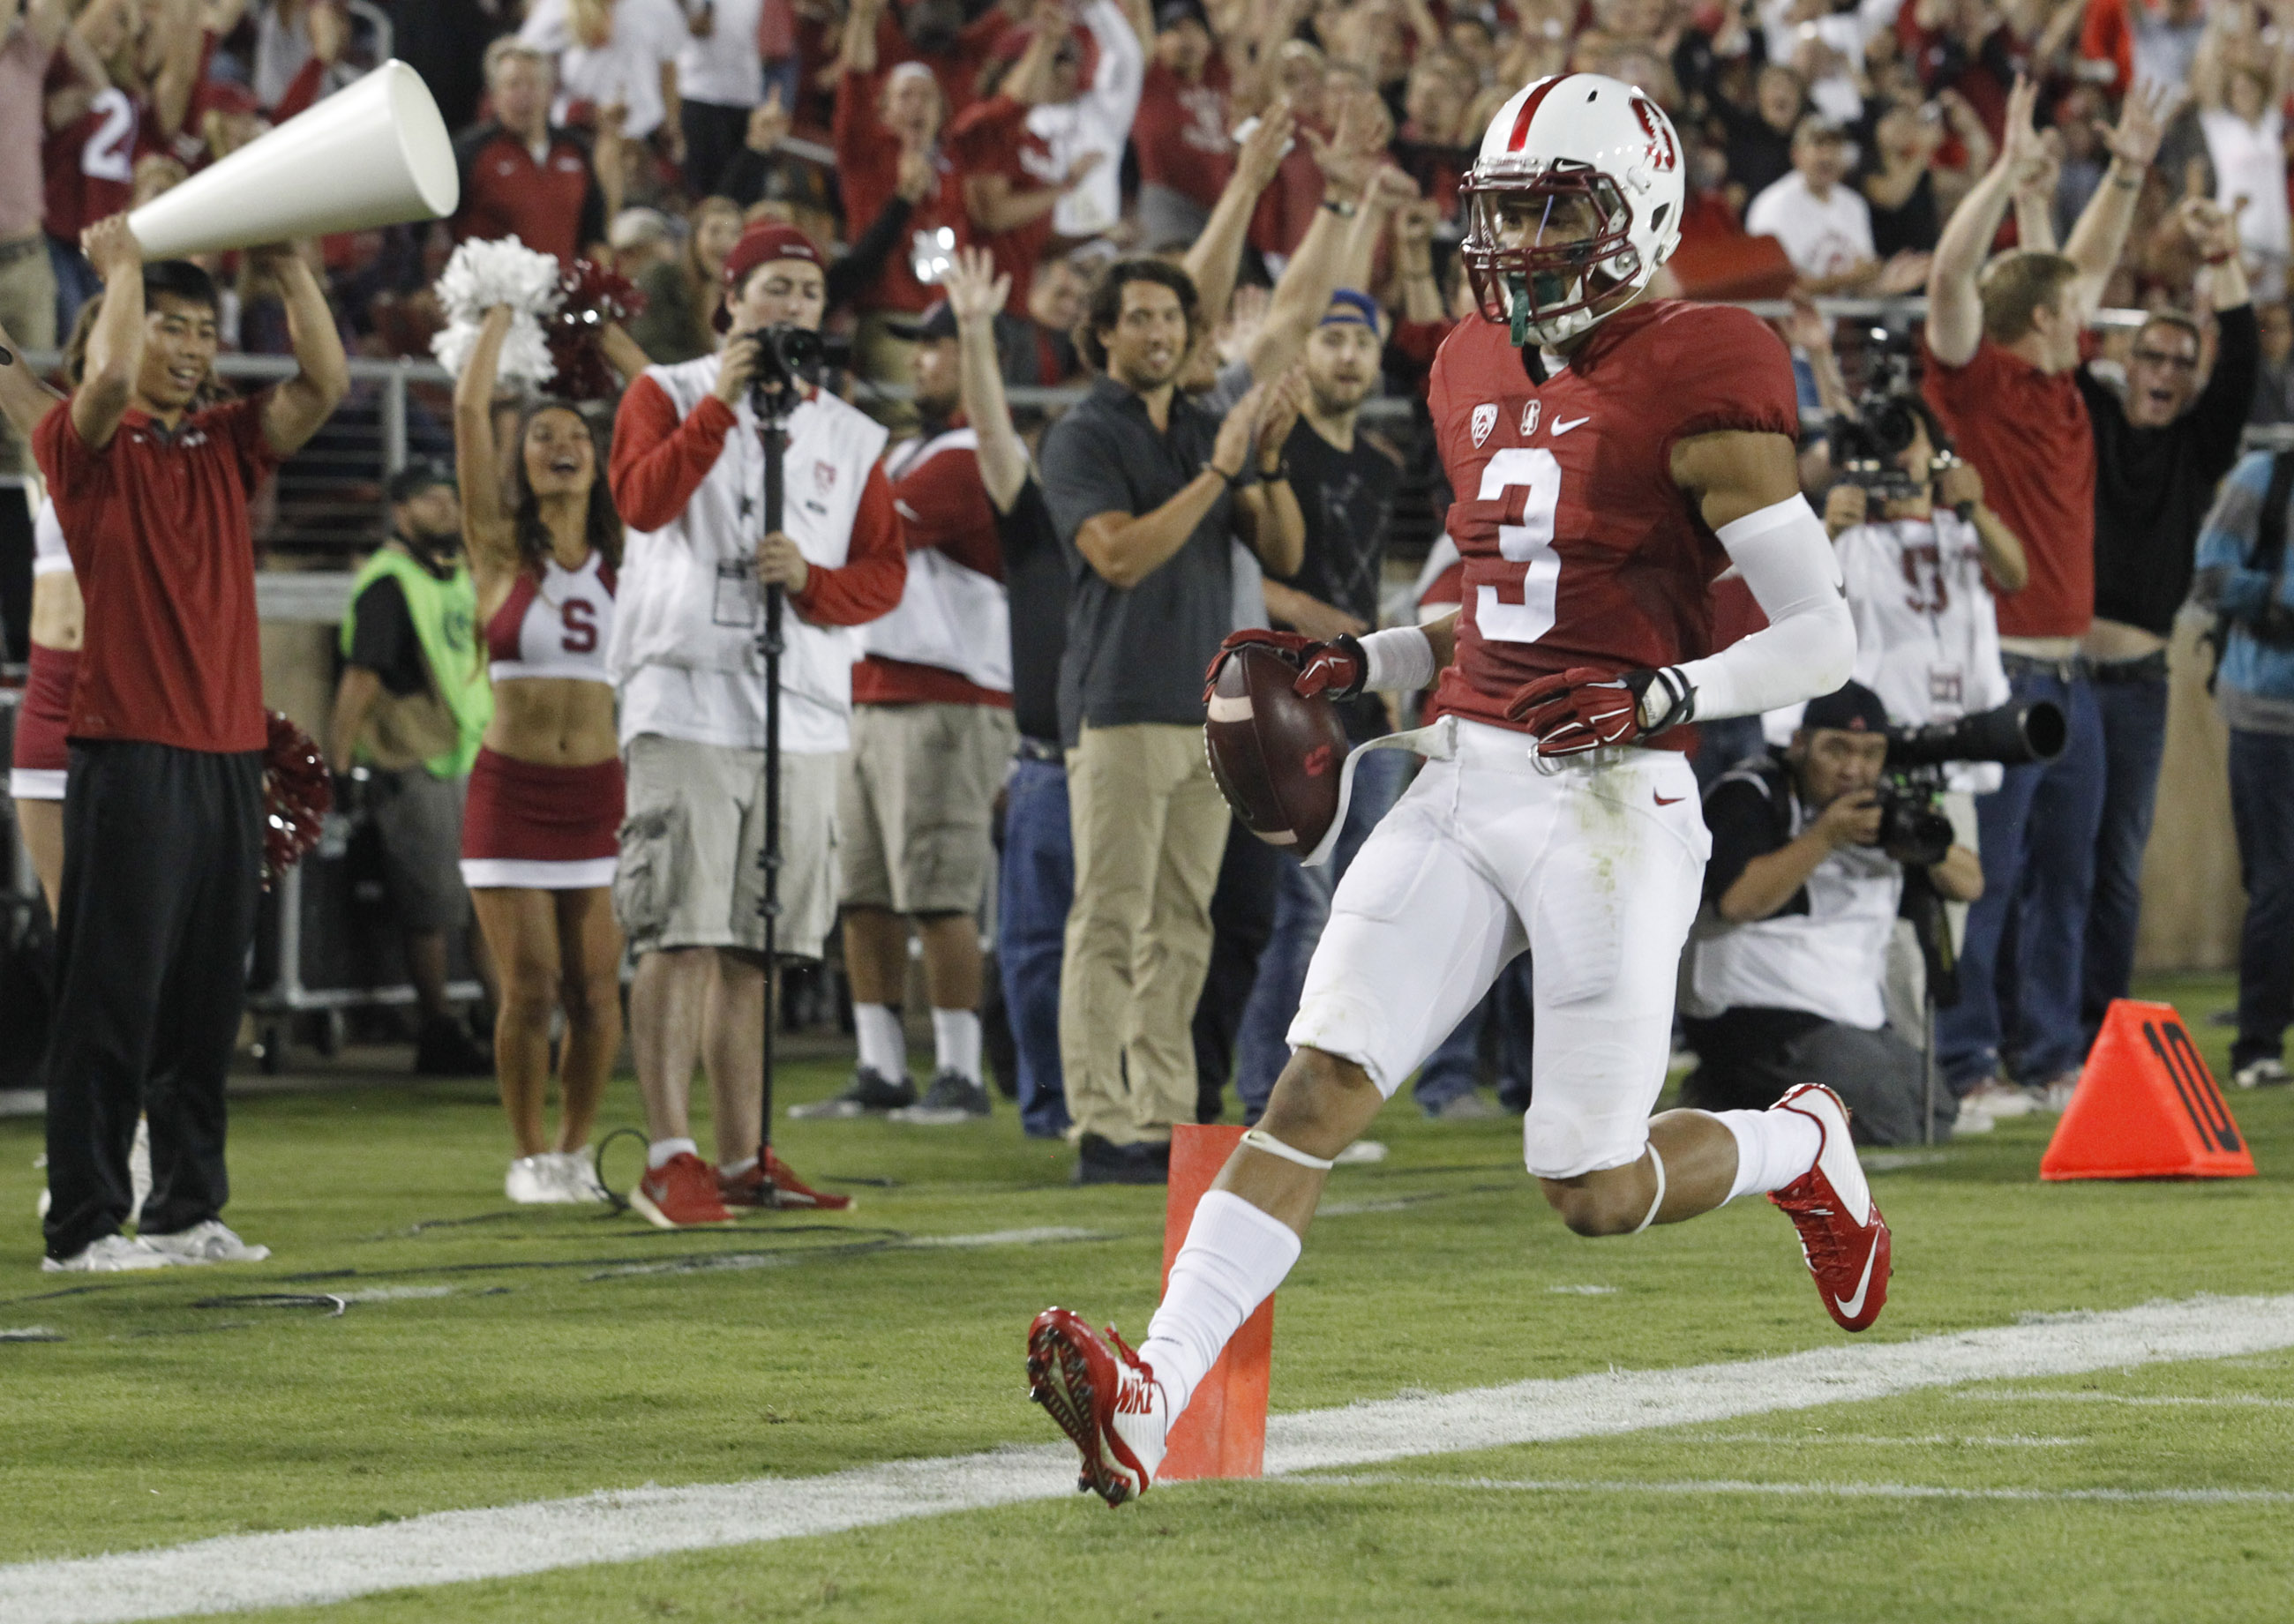 Stanford's Micheal Rector scores a second-quarter touchdown against Central Florida during an NCAA college football game Saturday, Sept. 12, 2015, in Stanford, Calif. (AP Photo/Matthew Sumner)